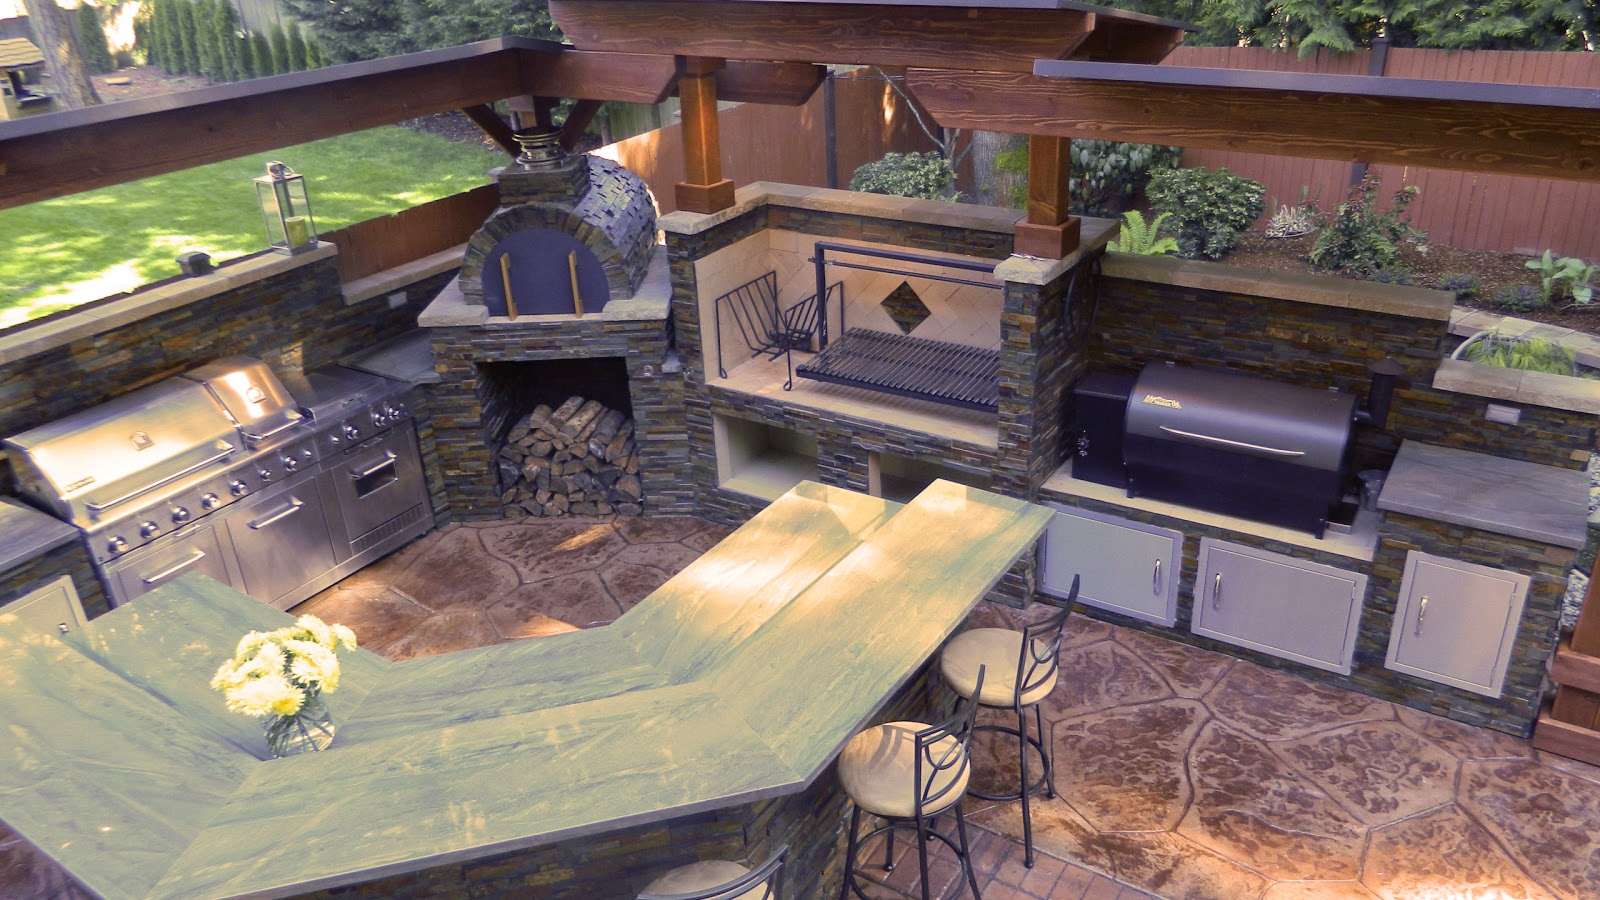 outdoor kitchen oven costco appliances with argentinian grill brickwood pizza and smoker in kirkland washington